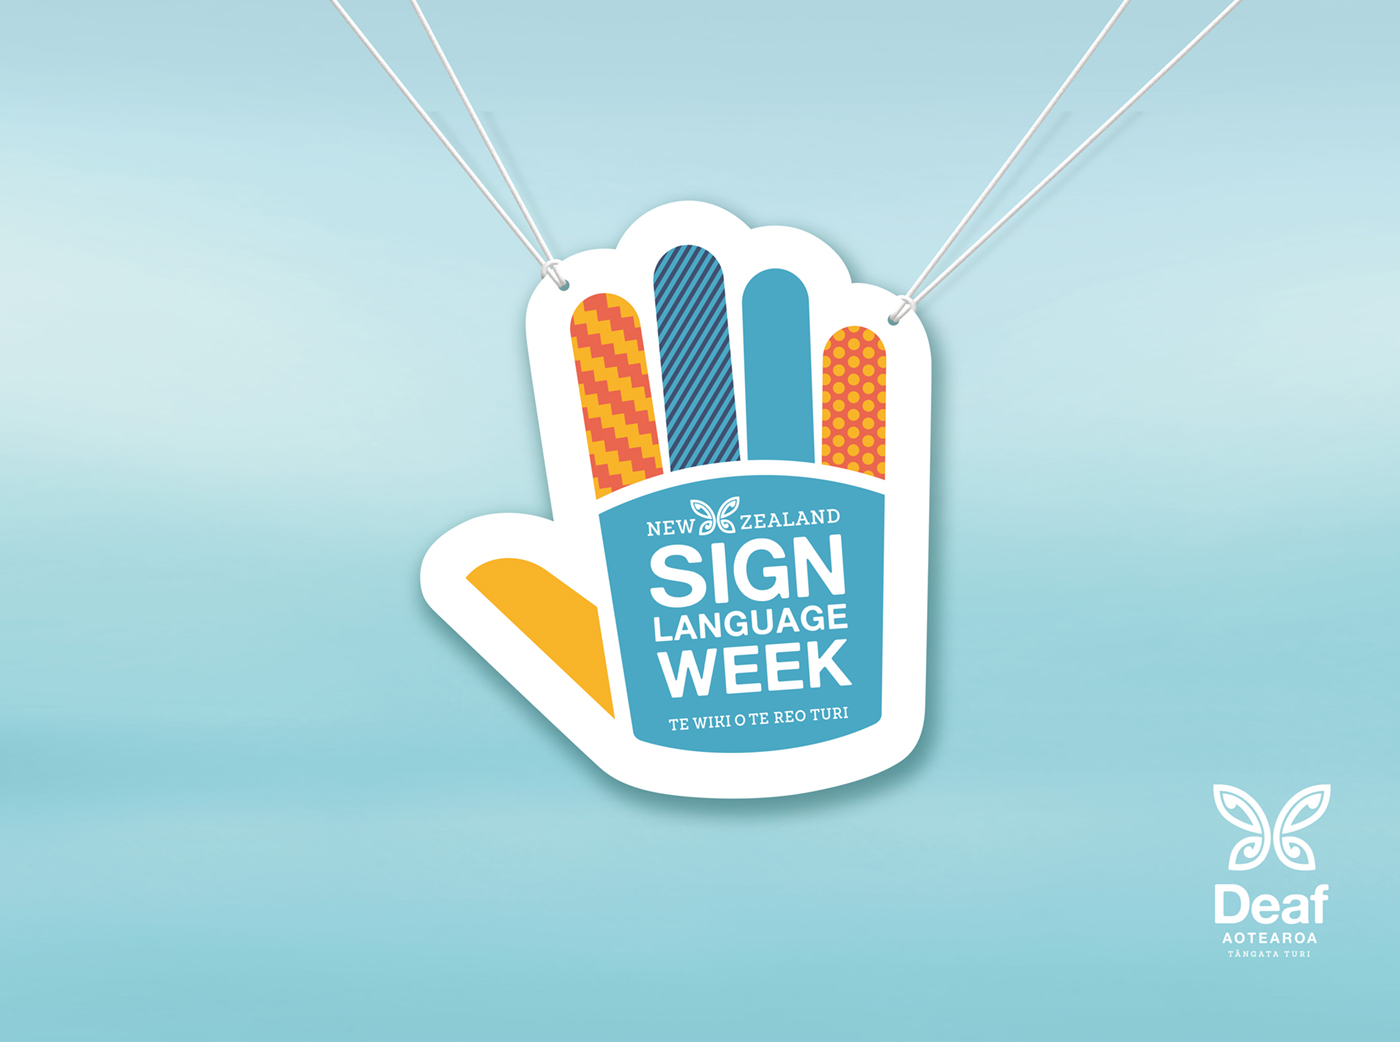 DAN Sign Lang Week 2016 01 wh